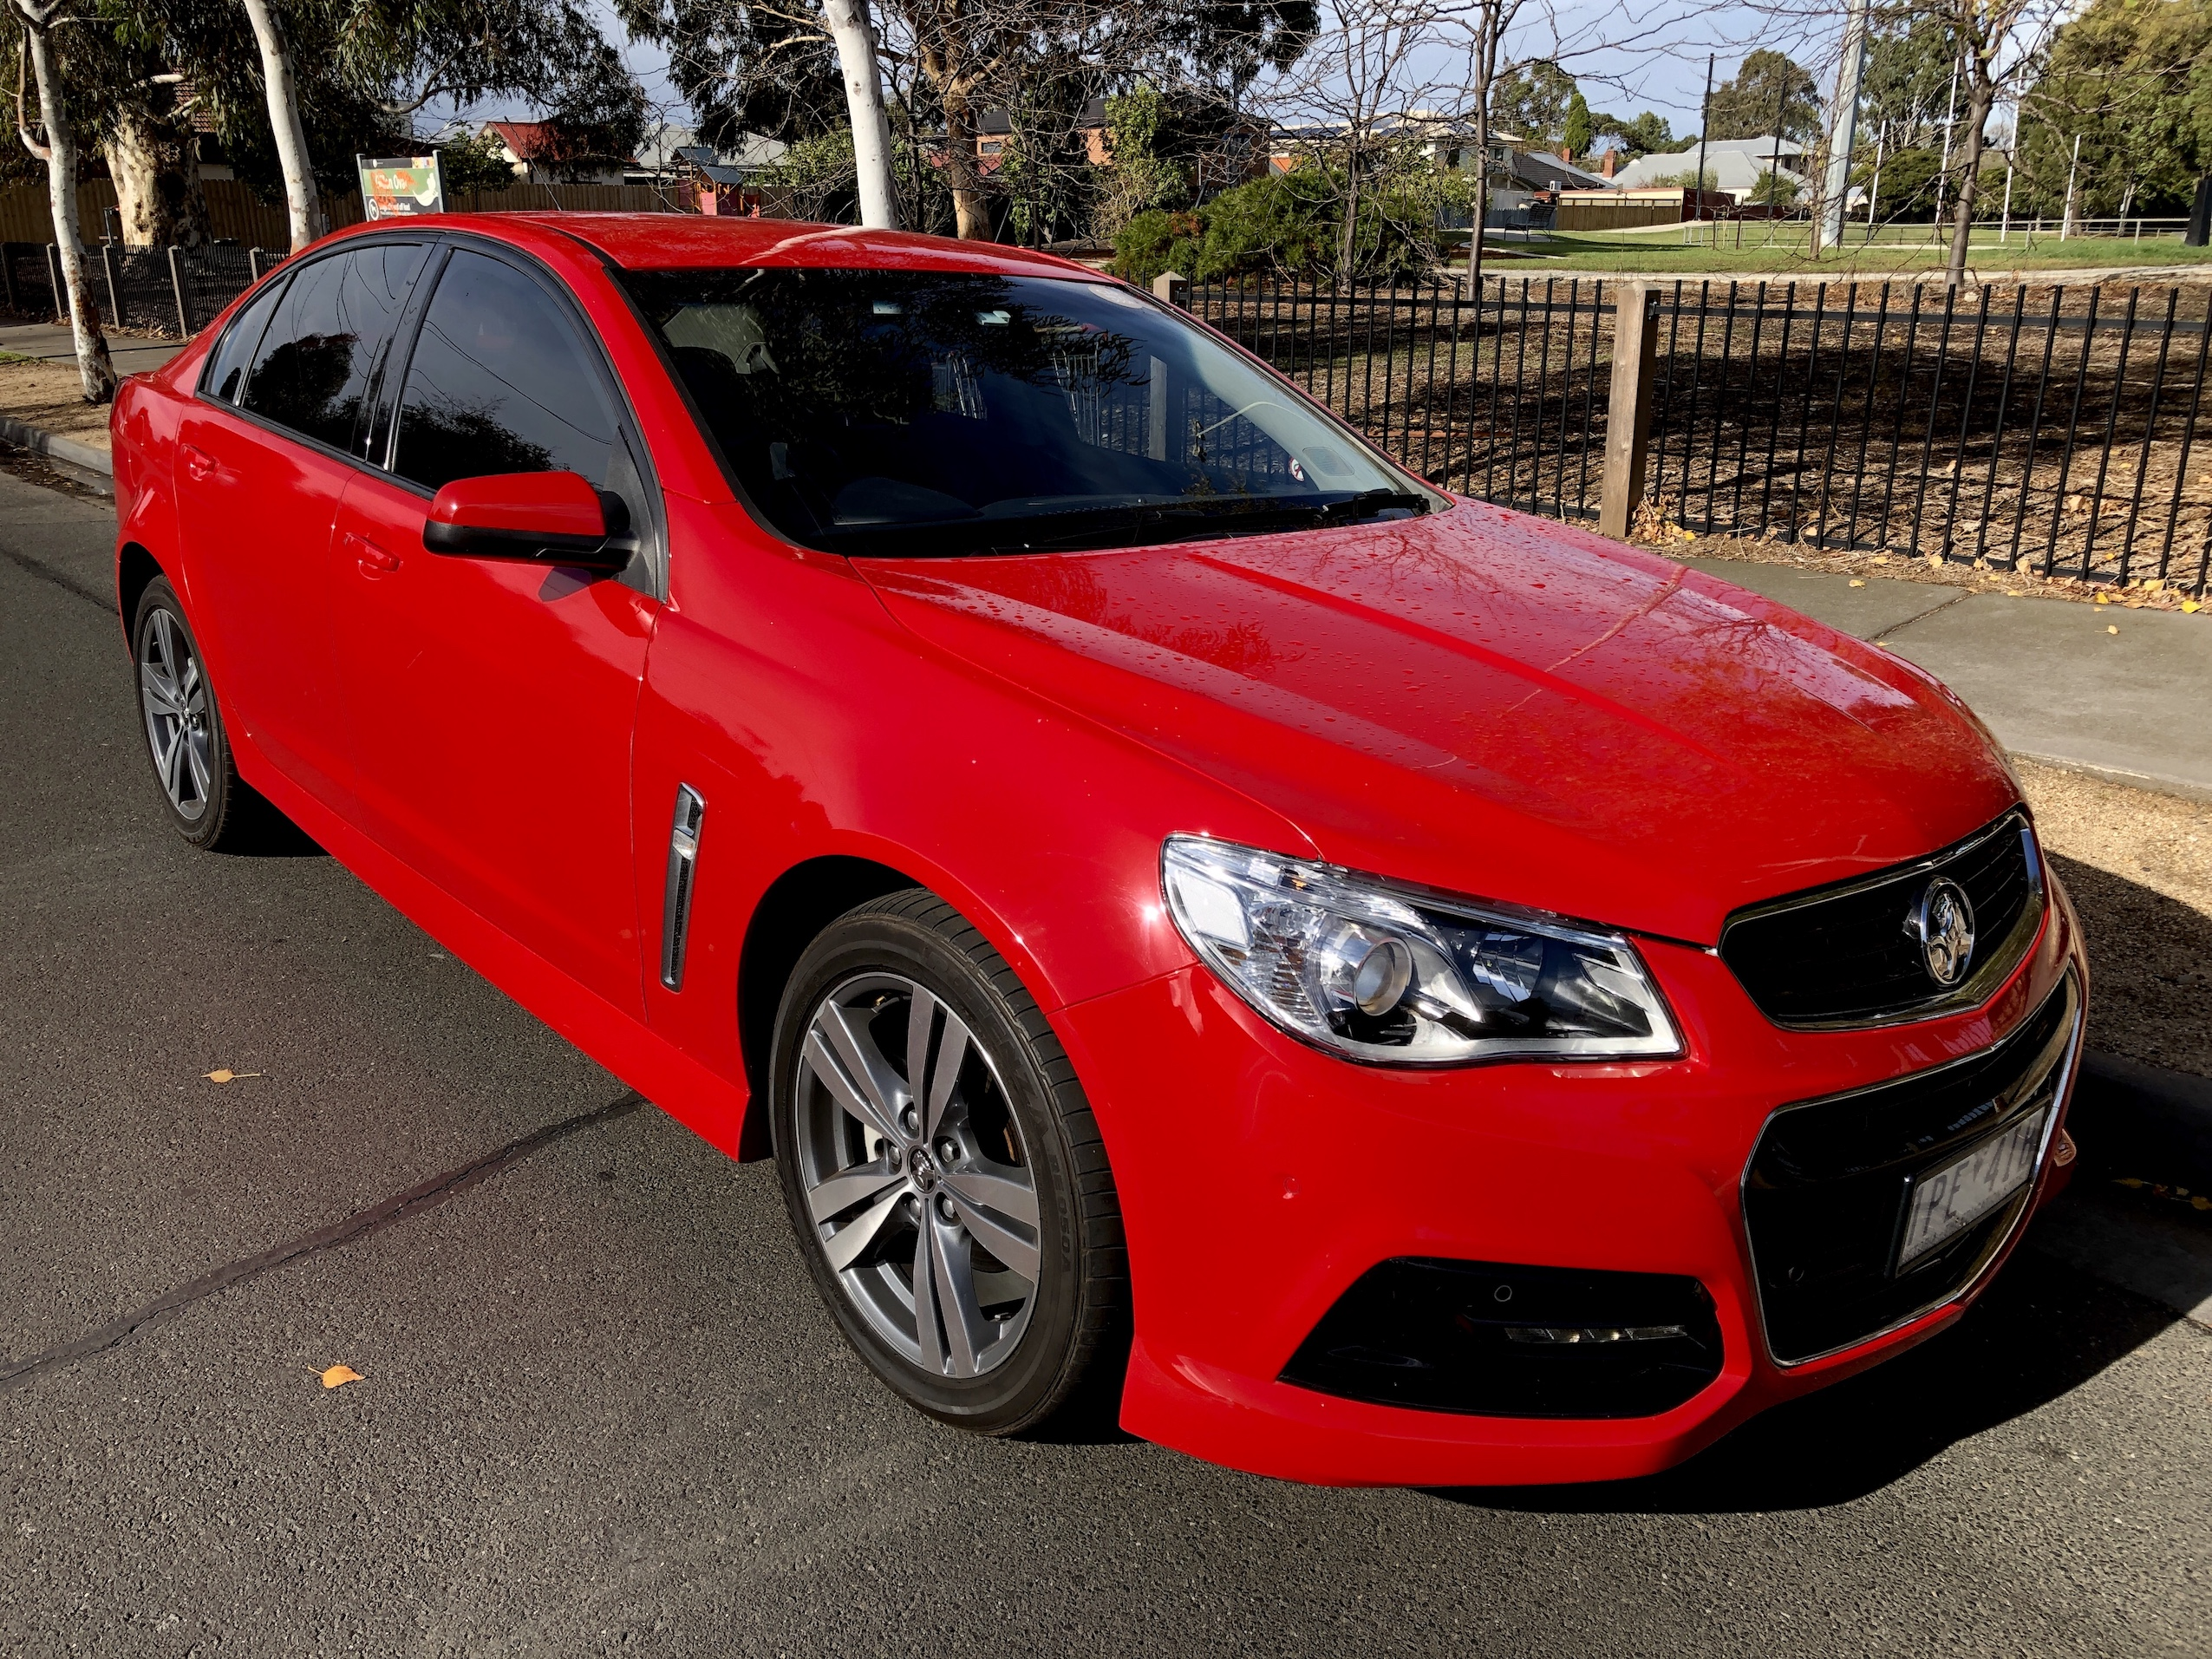 Picture of Rodwan's 2014 Holden Commodore